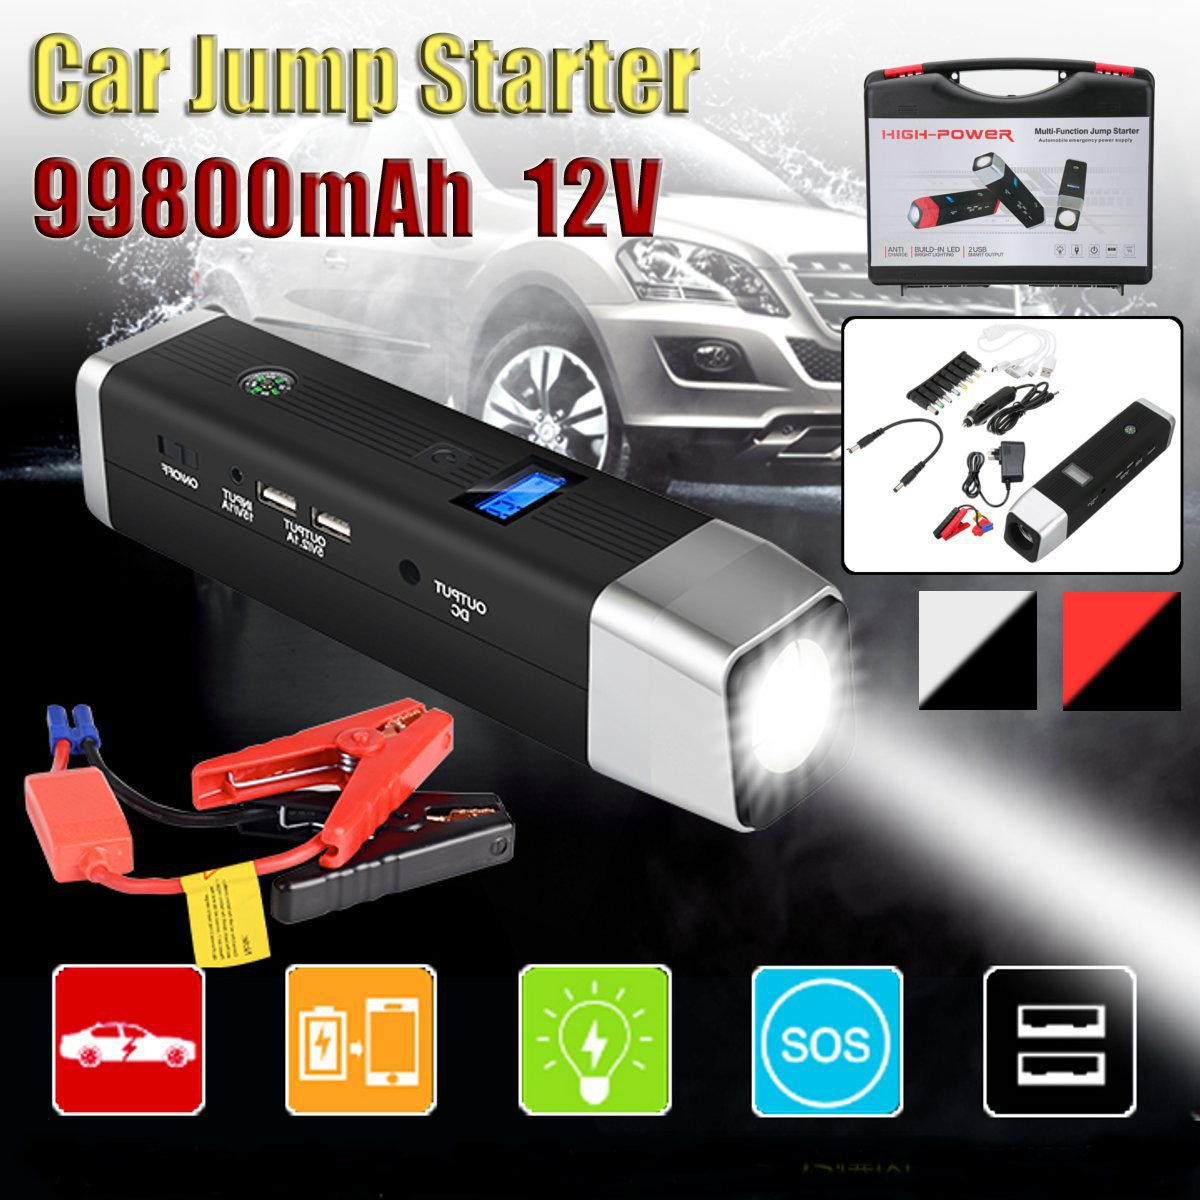 Multifunction Jump Starter 99800mAh 12V 2USB 500A Portable Car Battery Booster Charger Booster Power Bank Starting Device(China)